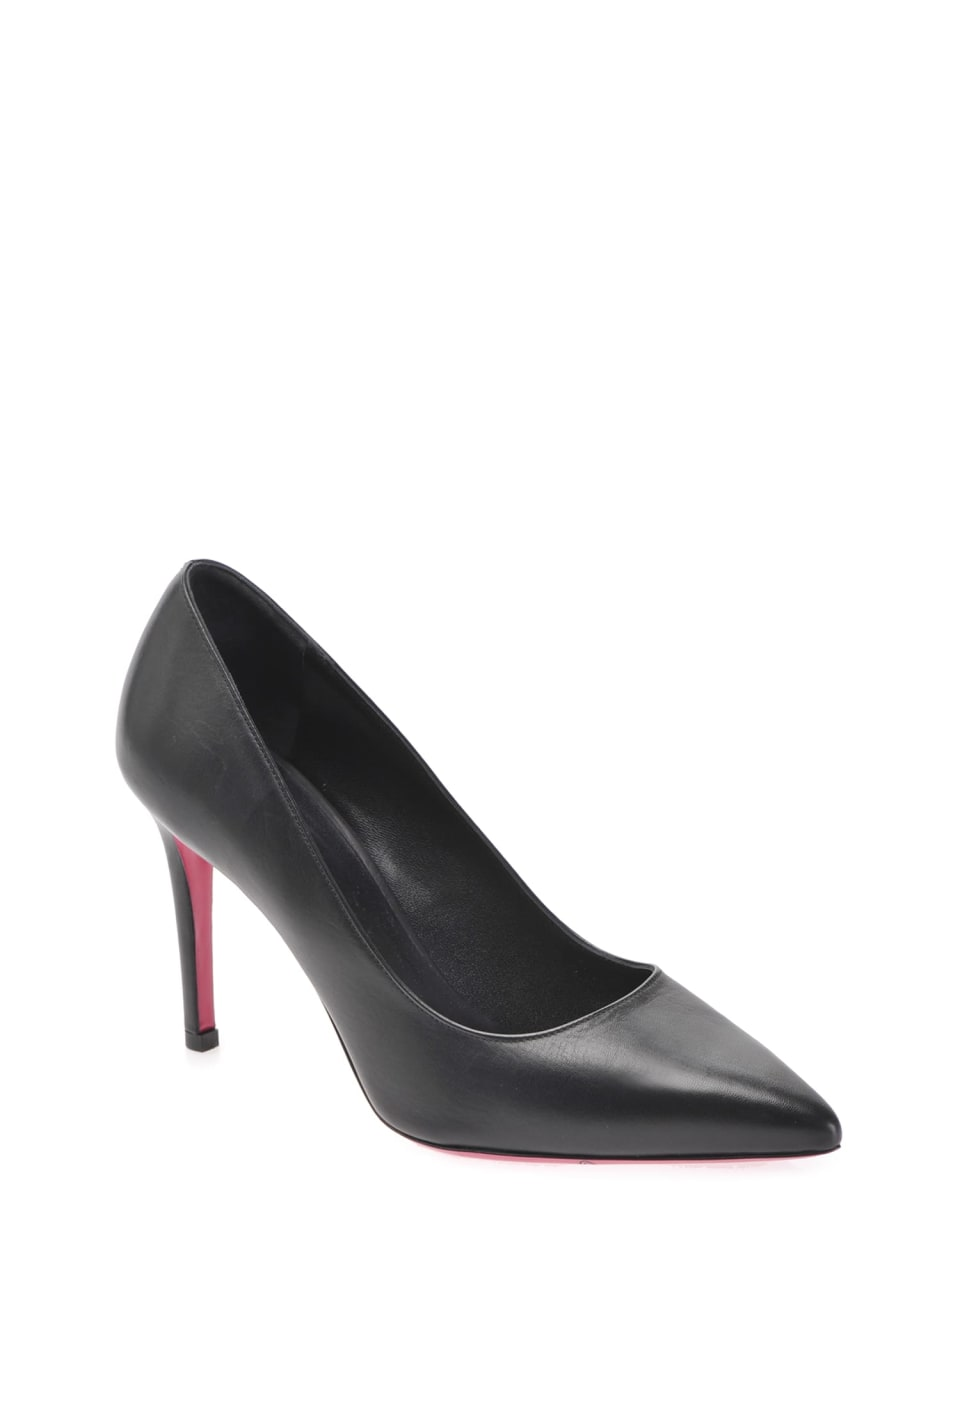 Leather pumps - Pinko